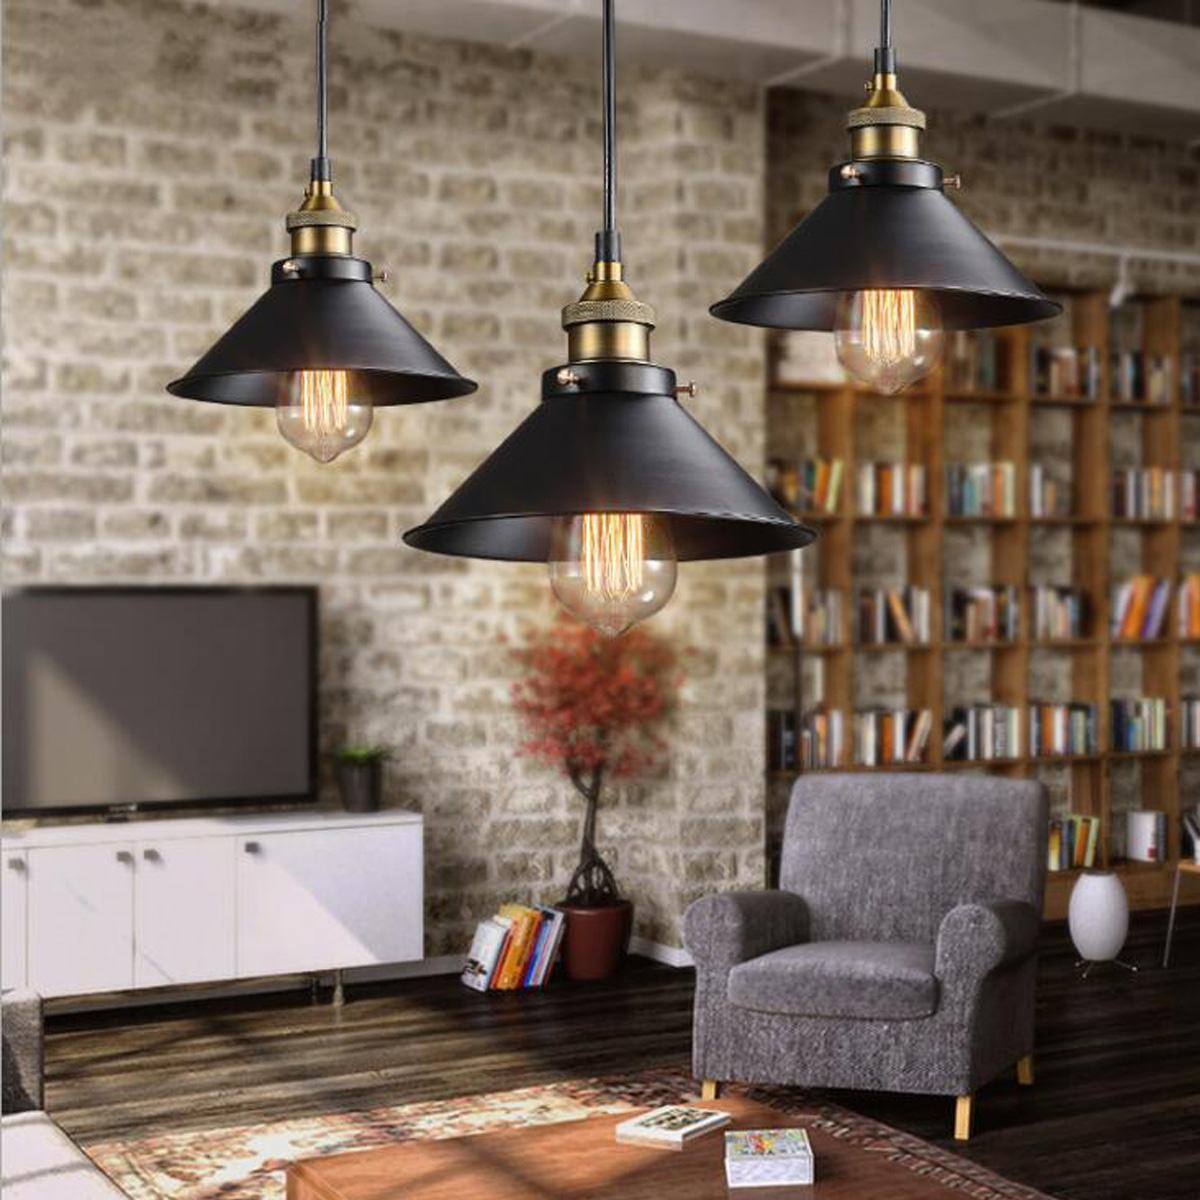 Nordic Vintage Pendant Light Industrial Retro Iron Lights Loft Edison Hanging Lamp Cafe Bar Kitchen Dining Home Lighting Fixture